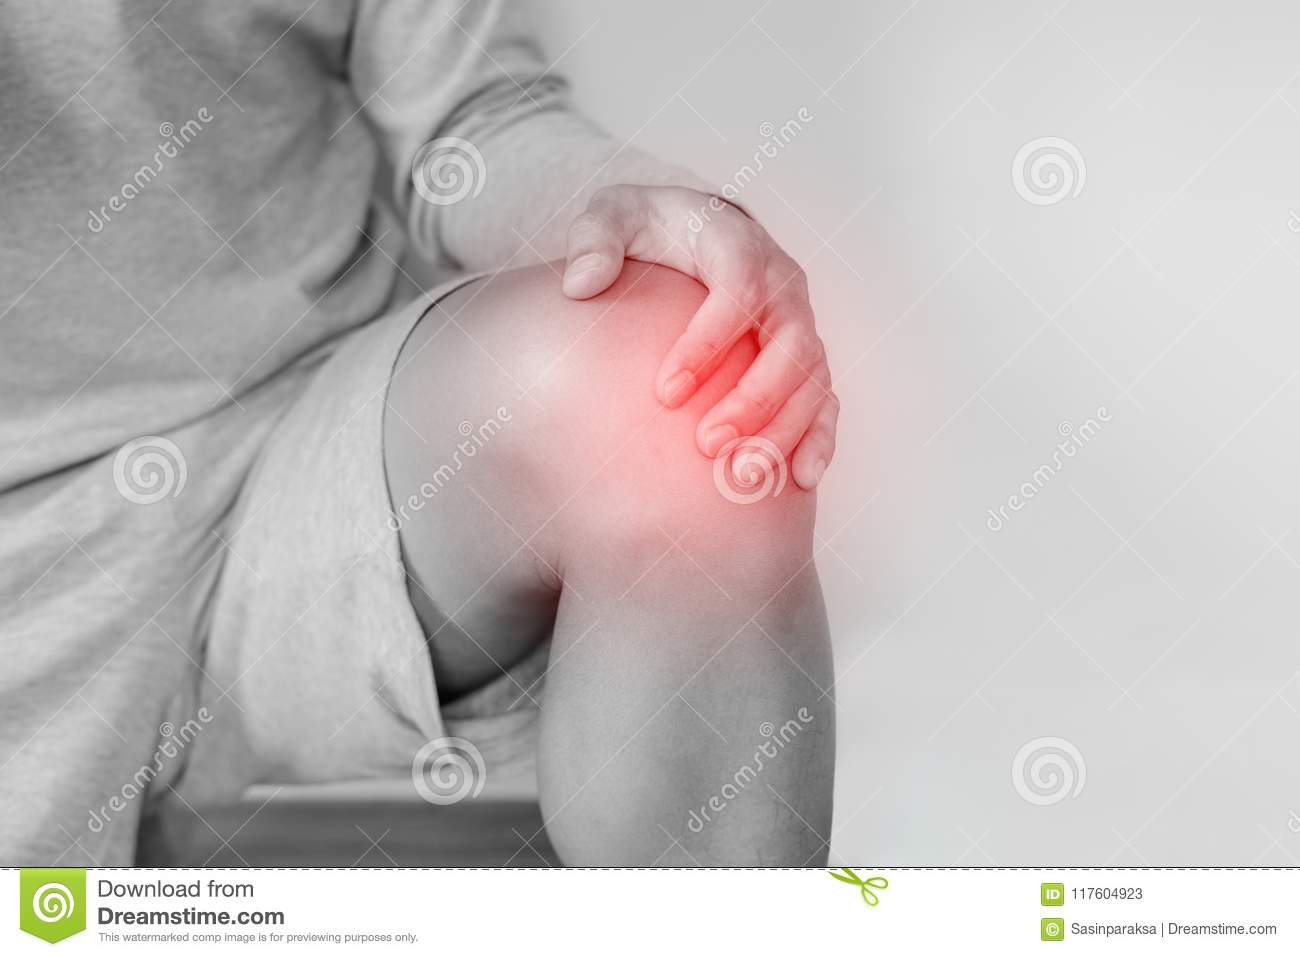 Knee joint pain, a man suffering from knee pain , on white background